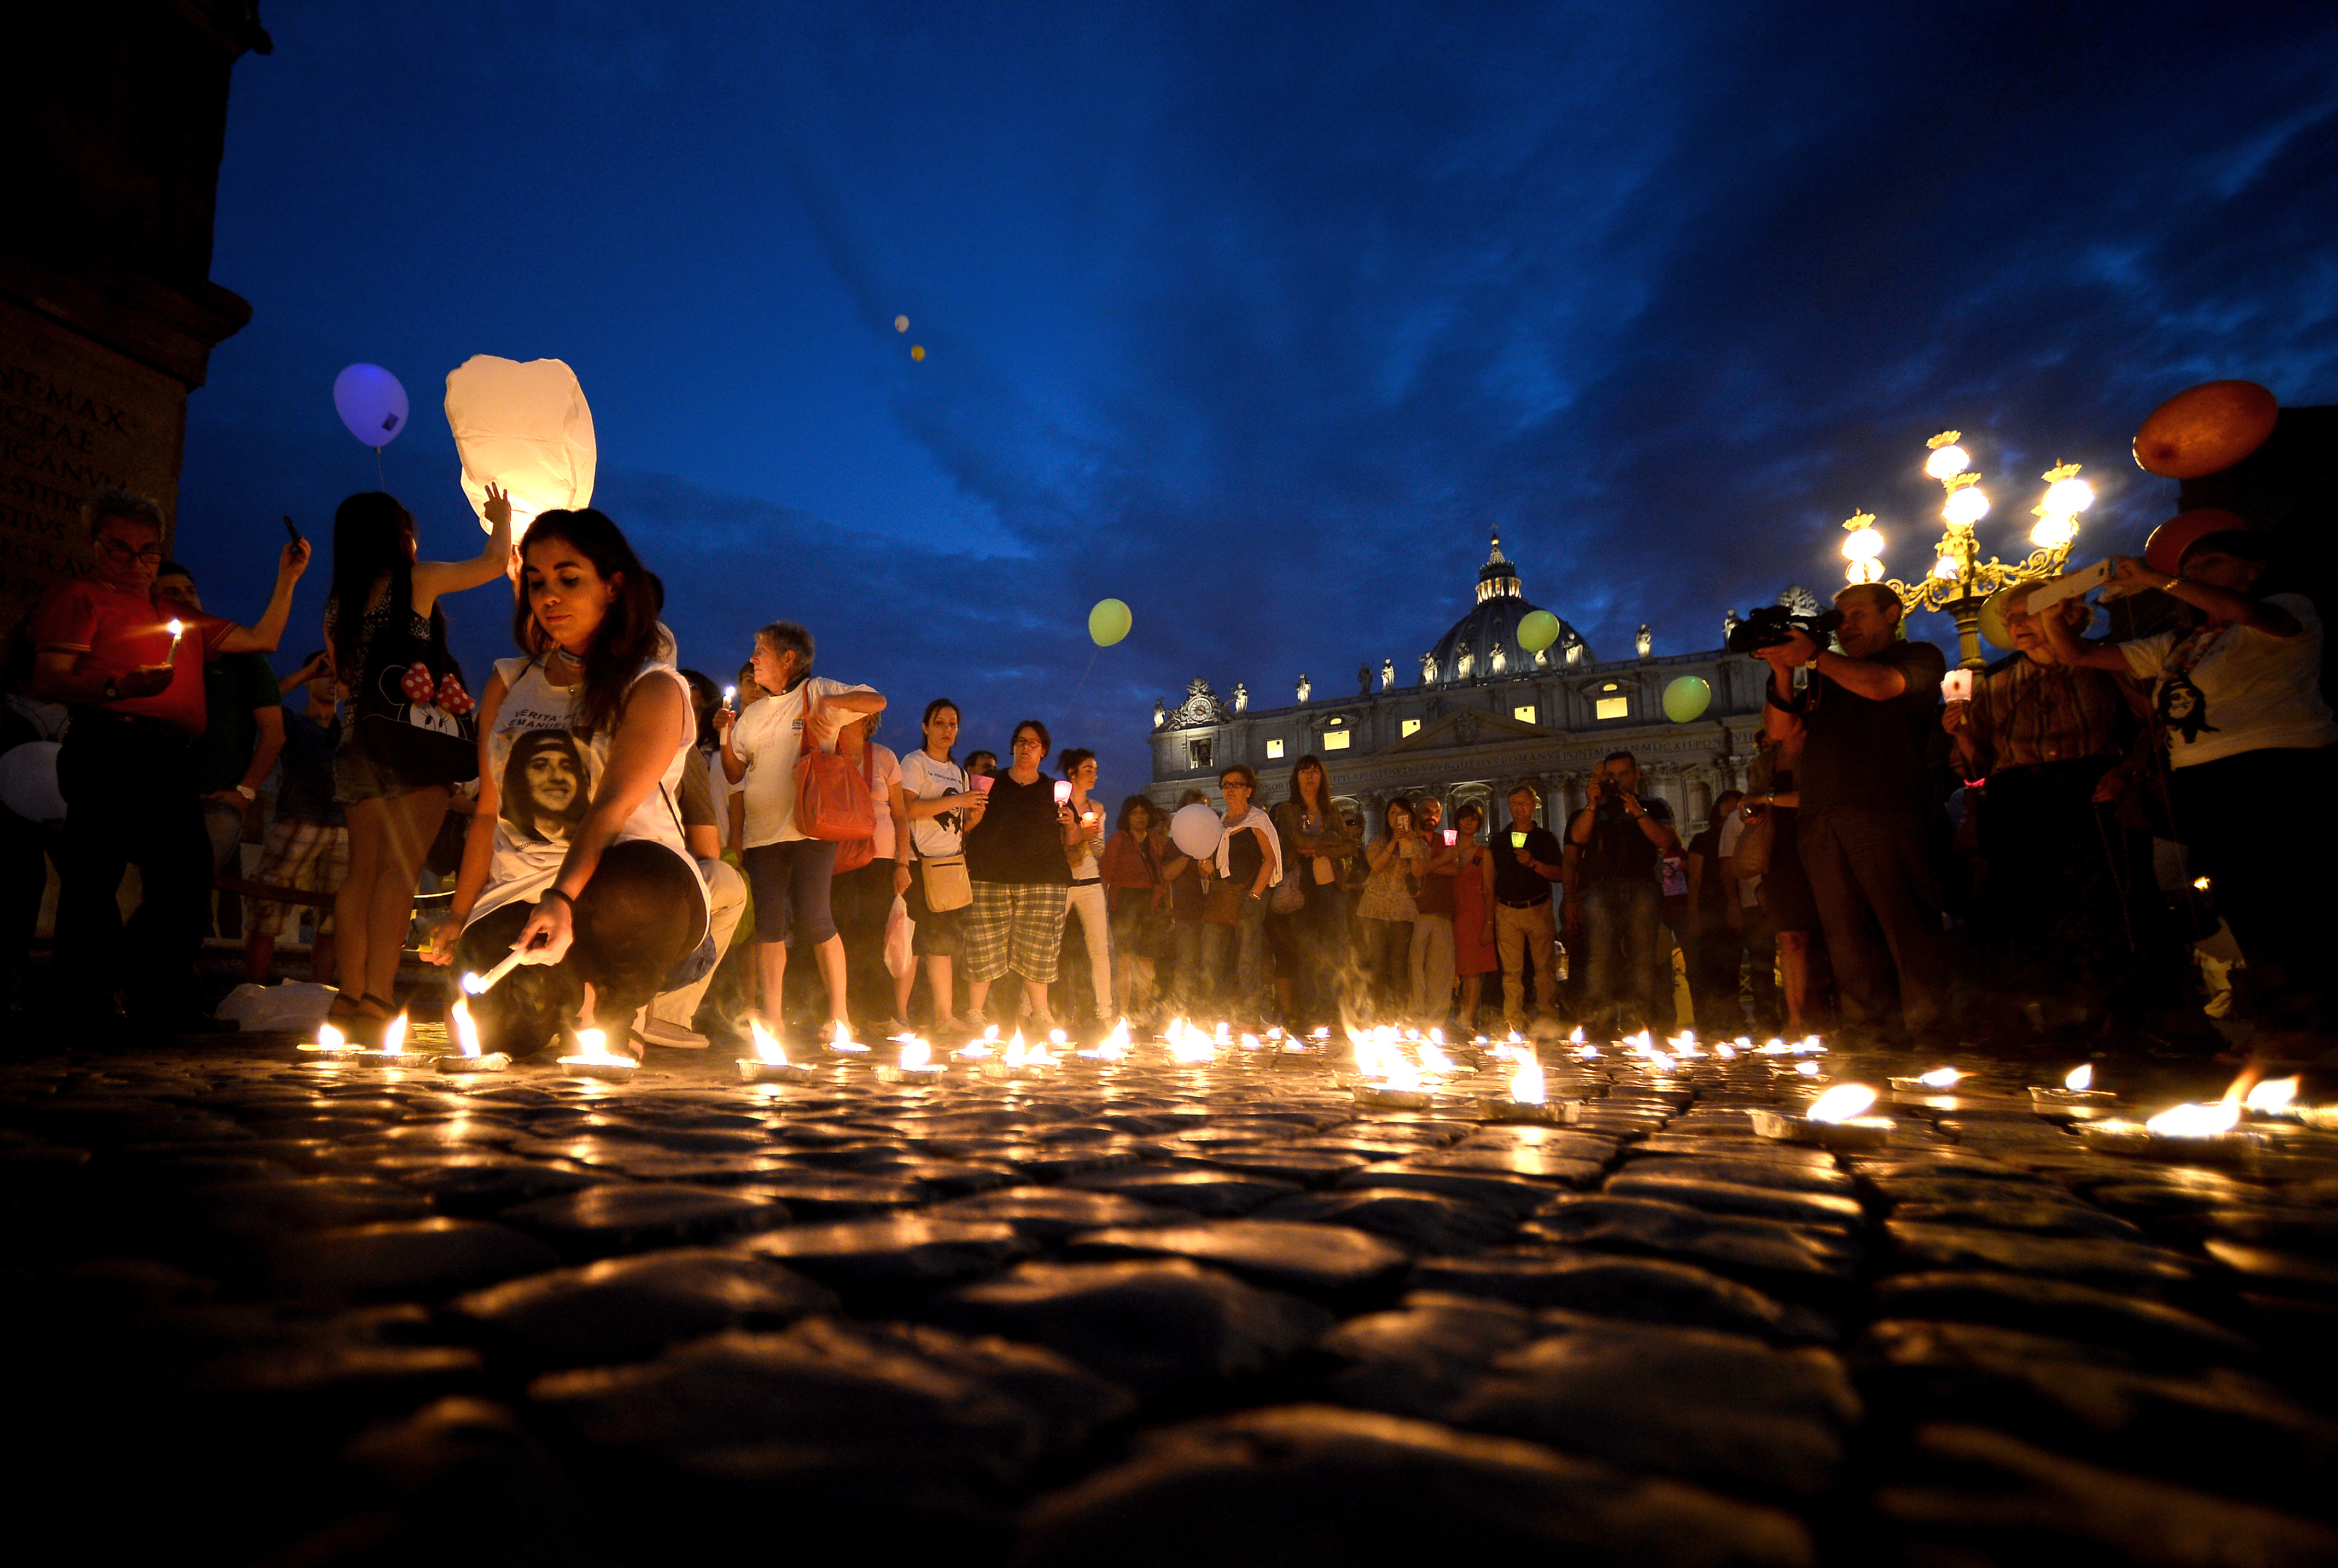 Demonstrators light candels as they commemorate the 30th anniversary of Emanuela Orlandi disappearance in Saint Peter's Square at the Vatican on June 22, 2013. (FILIPPO MONTEFORTE/AFP/Getty Images)